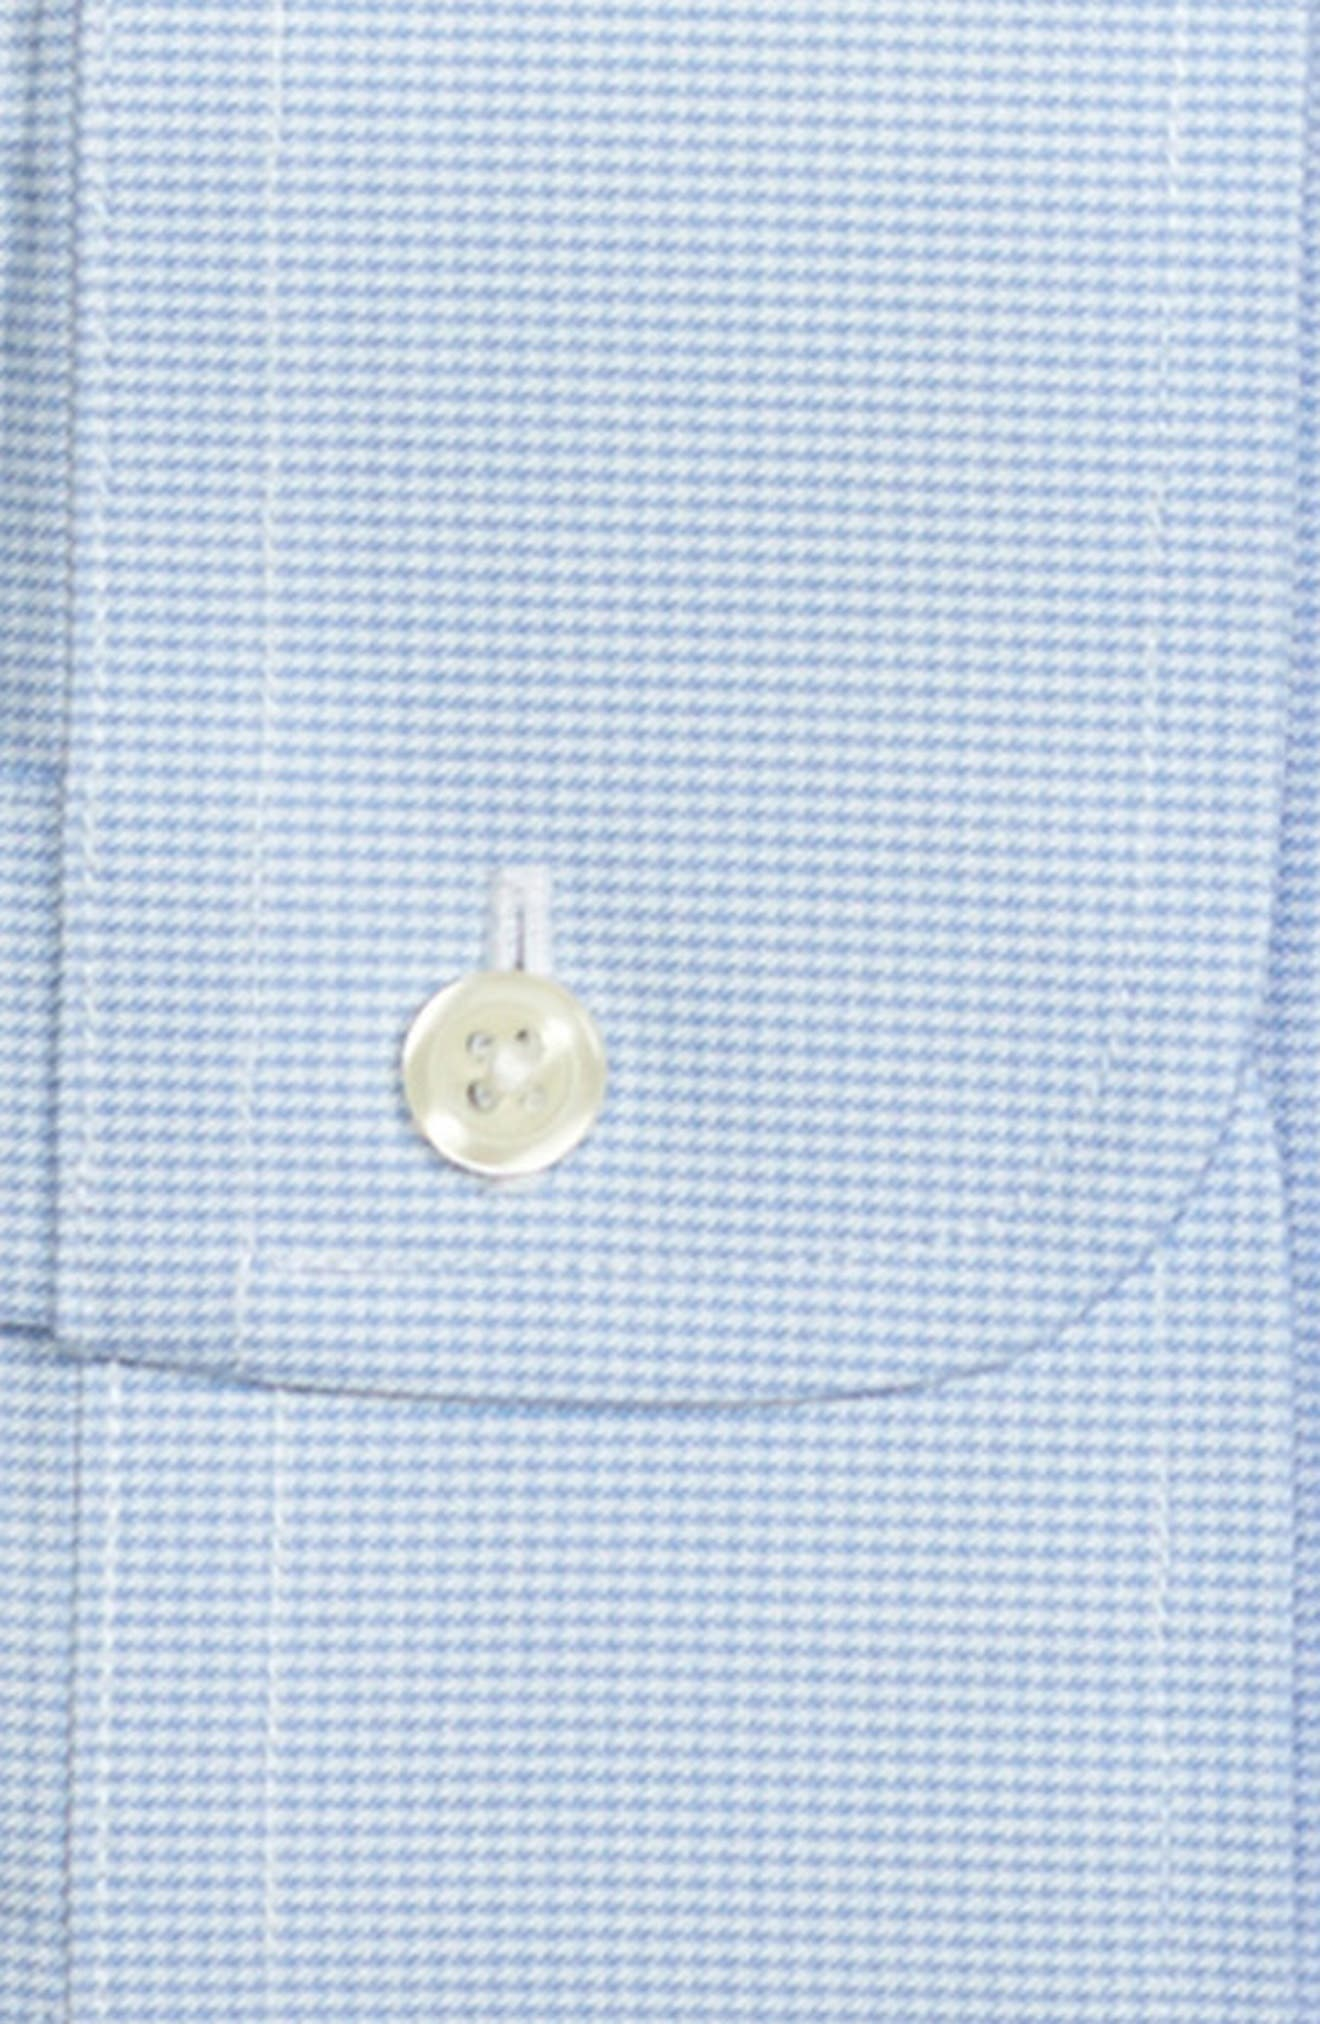 Classic Fit Houndstooth Dress Shirt,                             Alternate thumbnail 2, color,                             LIGHT/ PASTEL BLUE